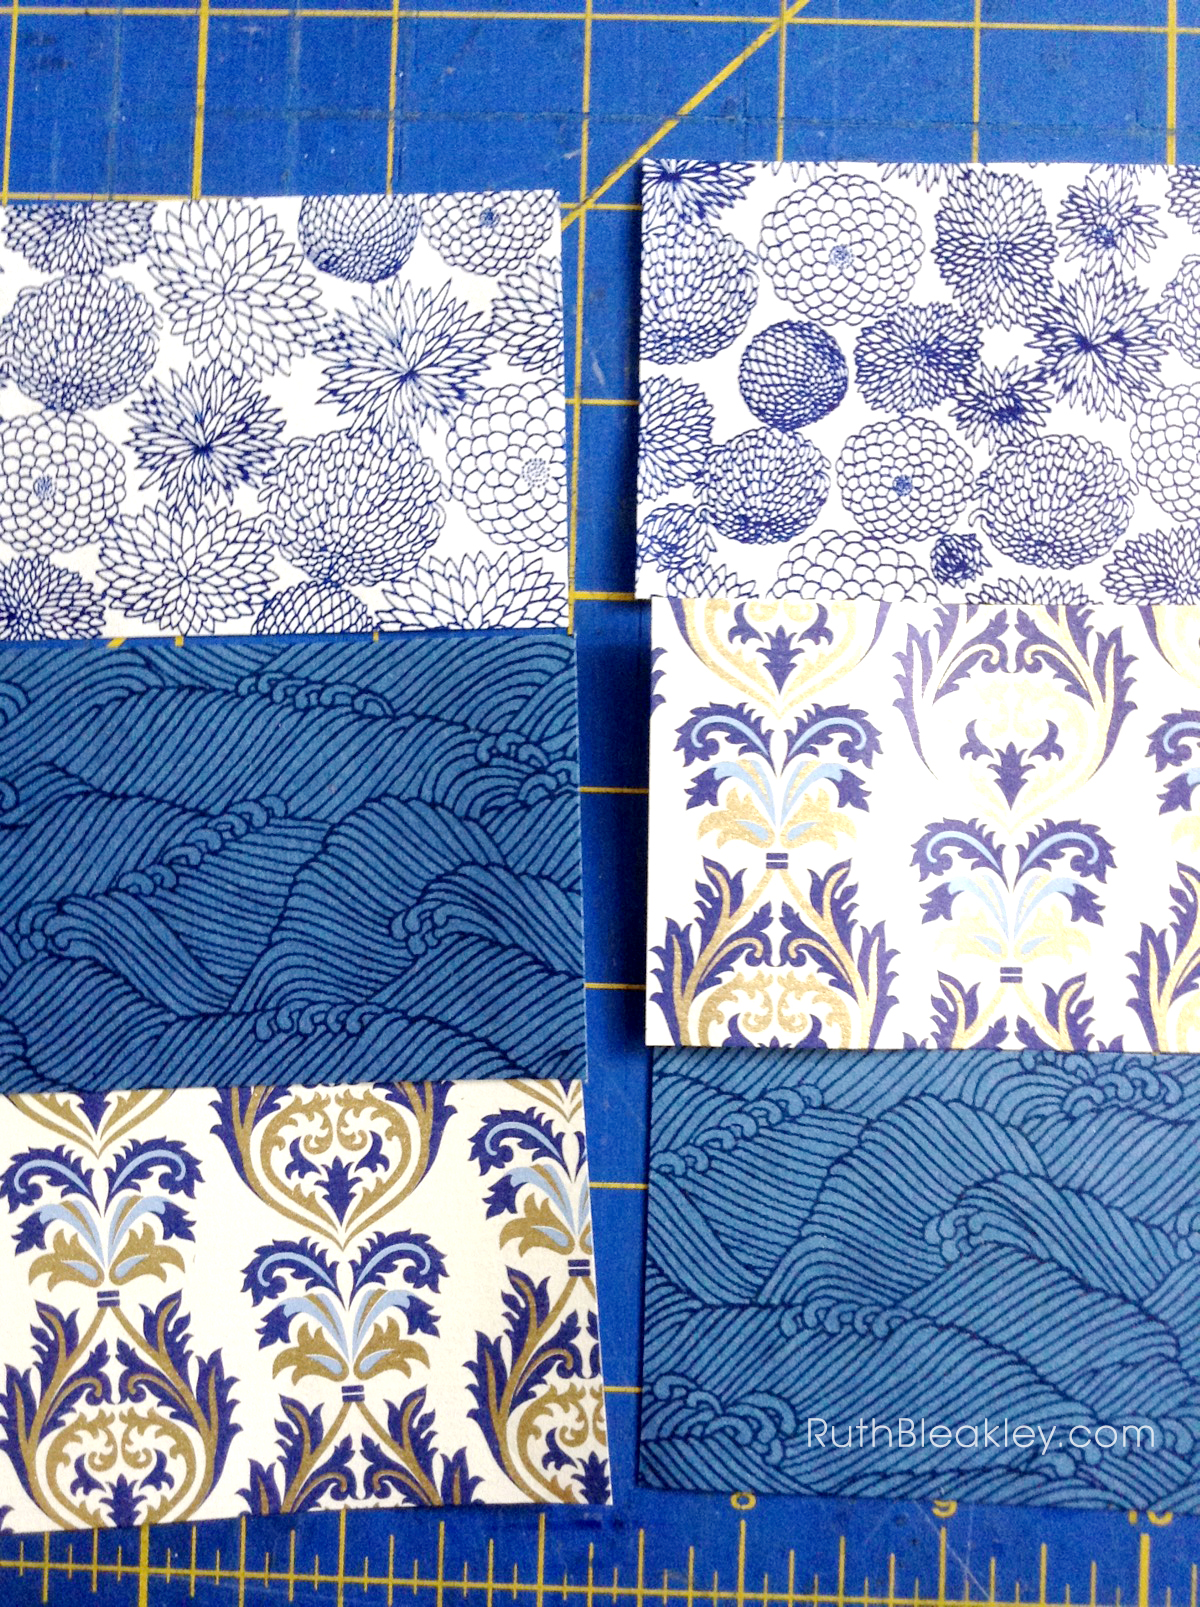 Florentine Waves French Link Journal handmade by Ruth Bleakley - decorative paper